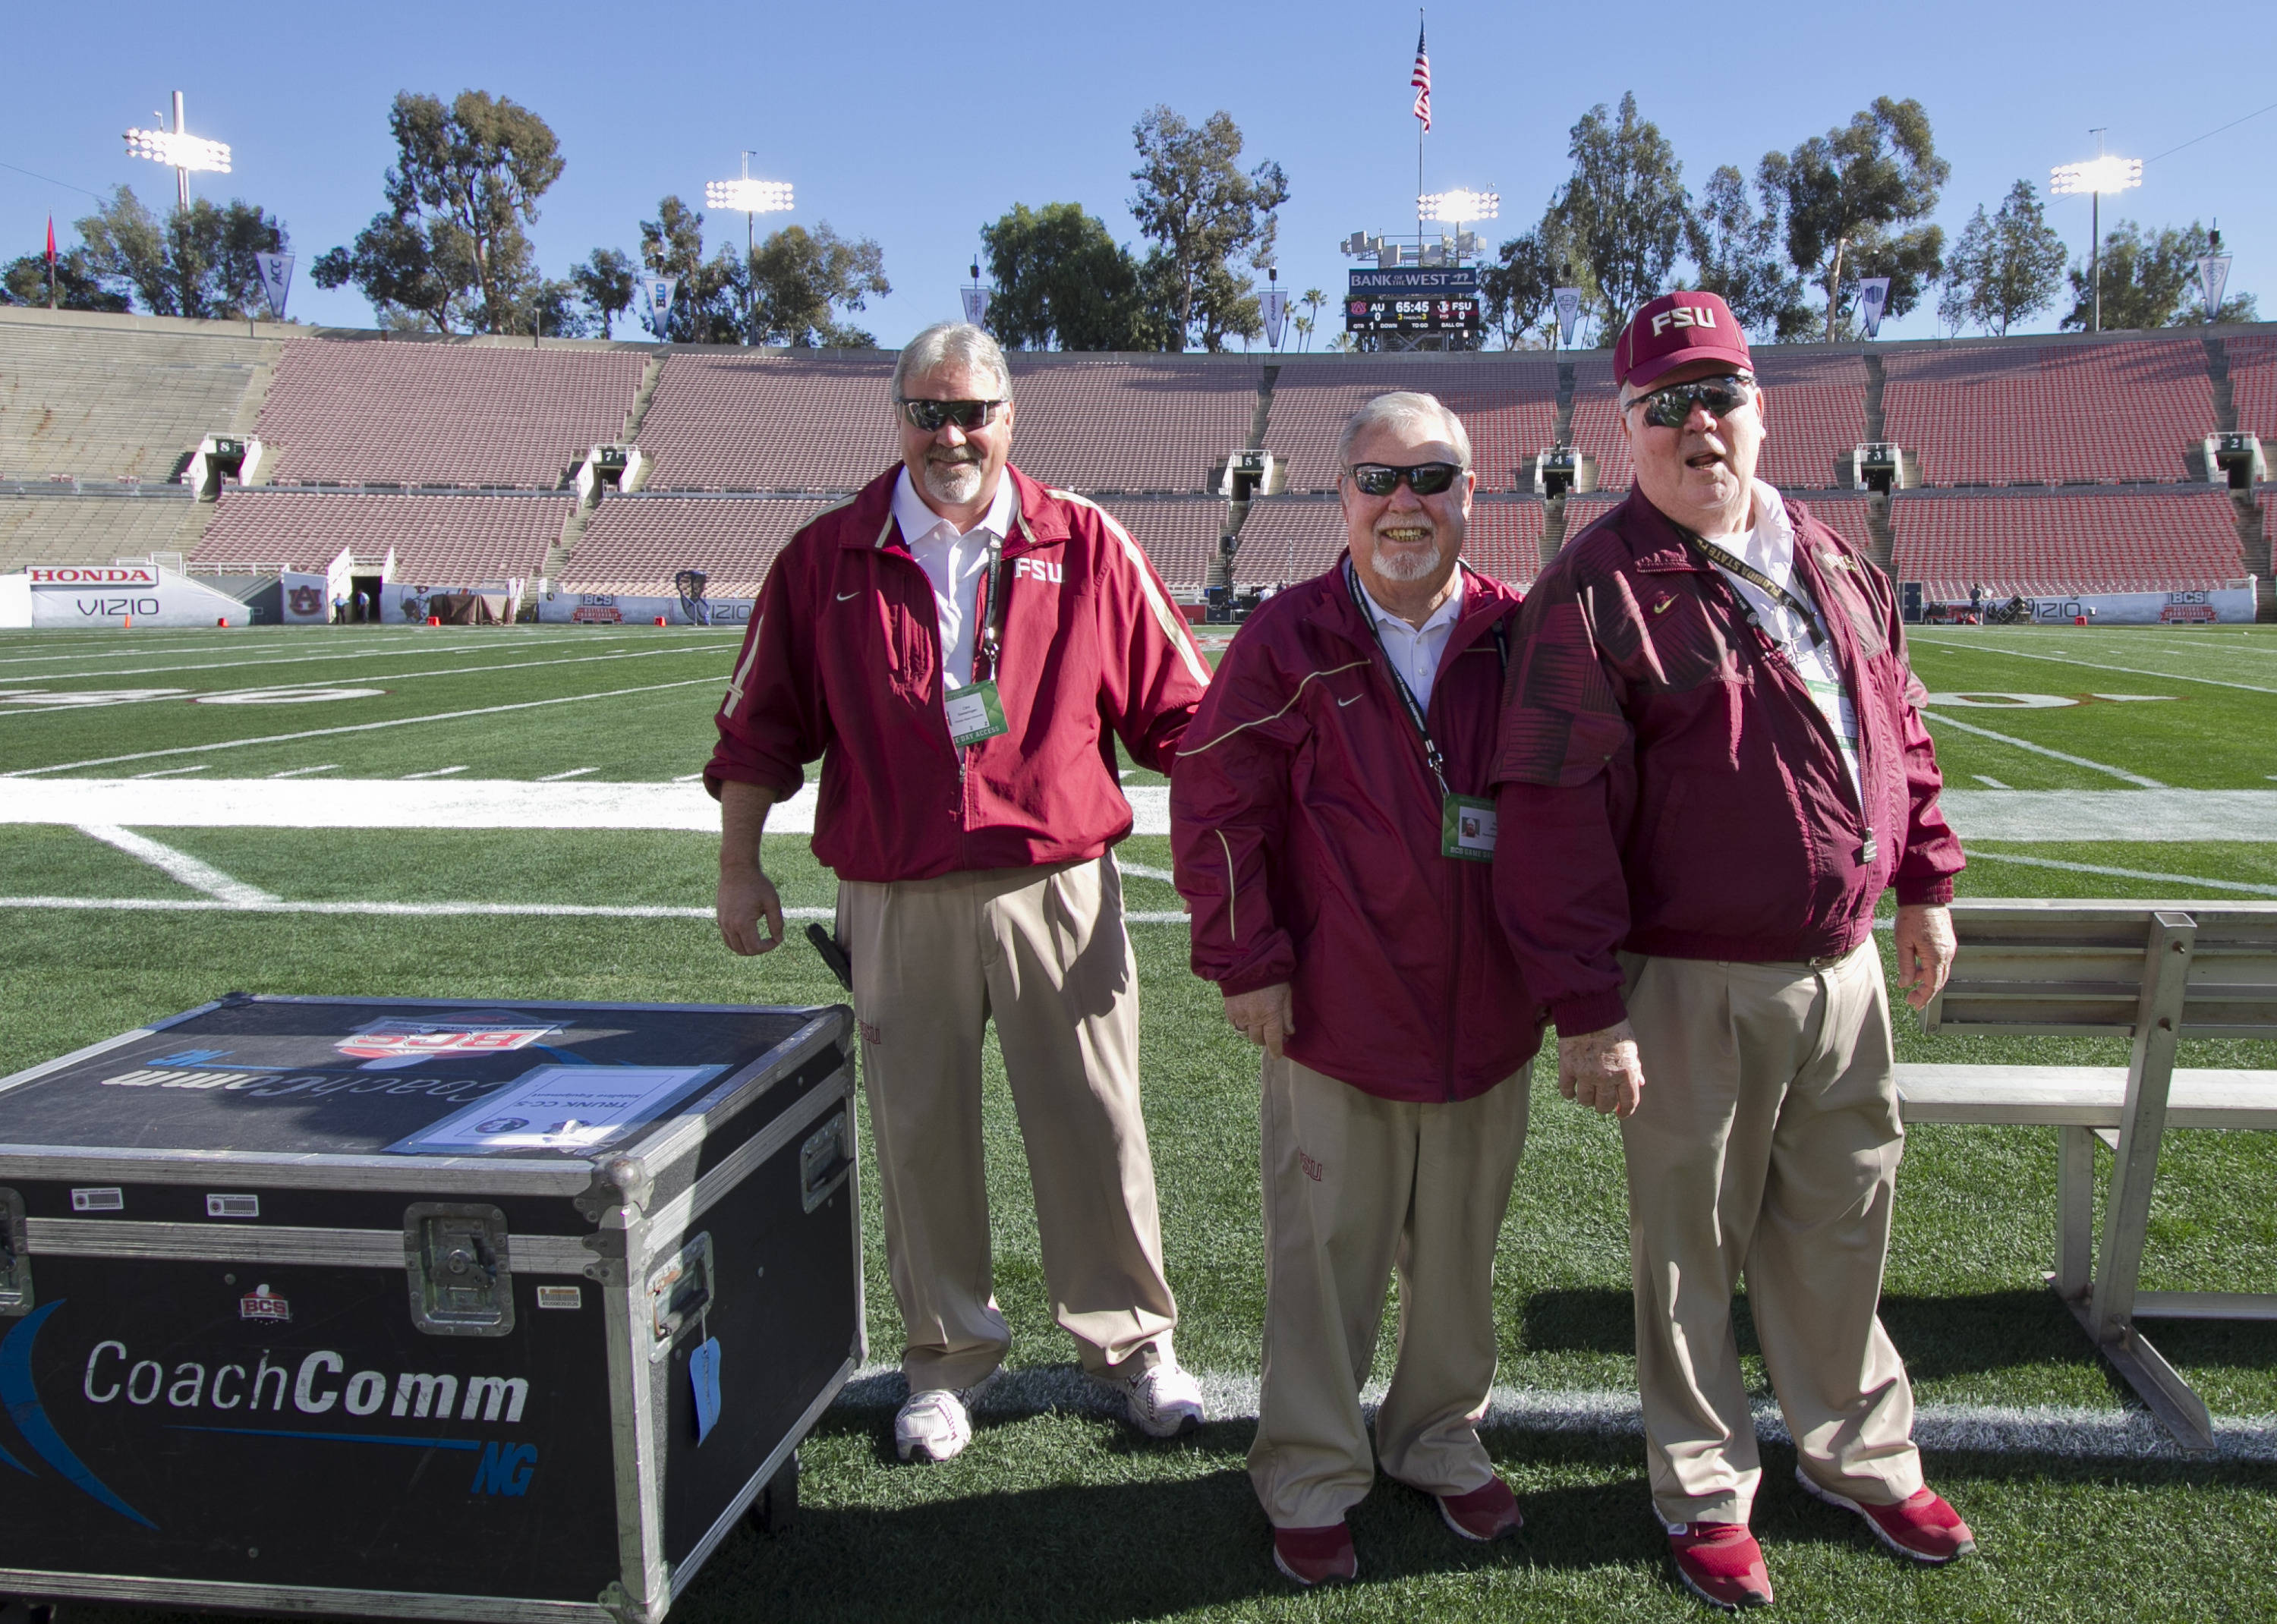 Beginning game equipment set up - 7 hrs before game time, FSU at BCS Championship, Rose Bowl, Pasadena, CA,  1-06-14,  (Photo by Steve Musco)